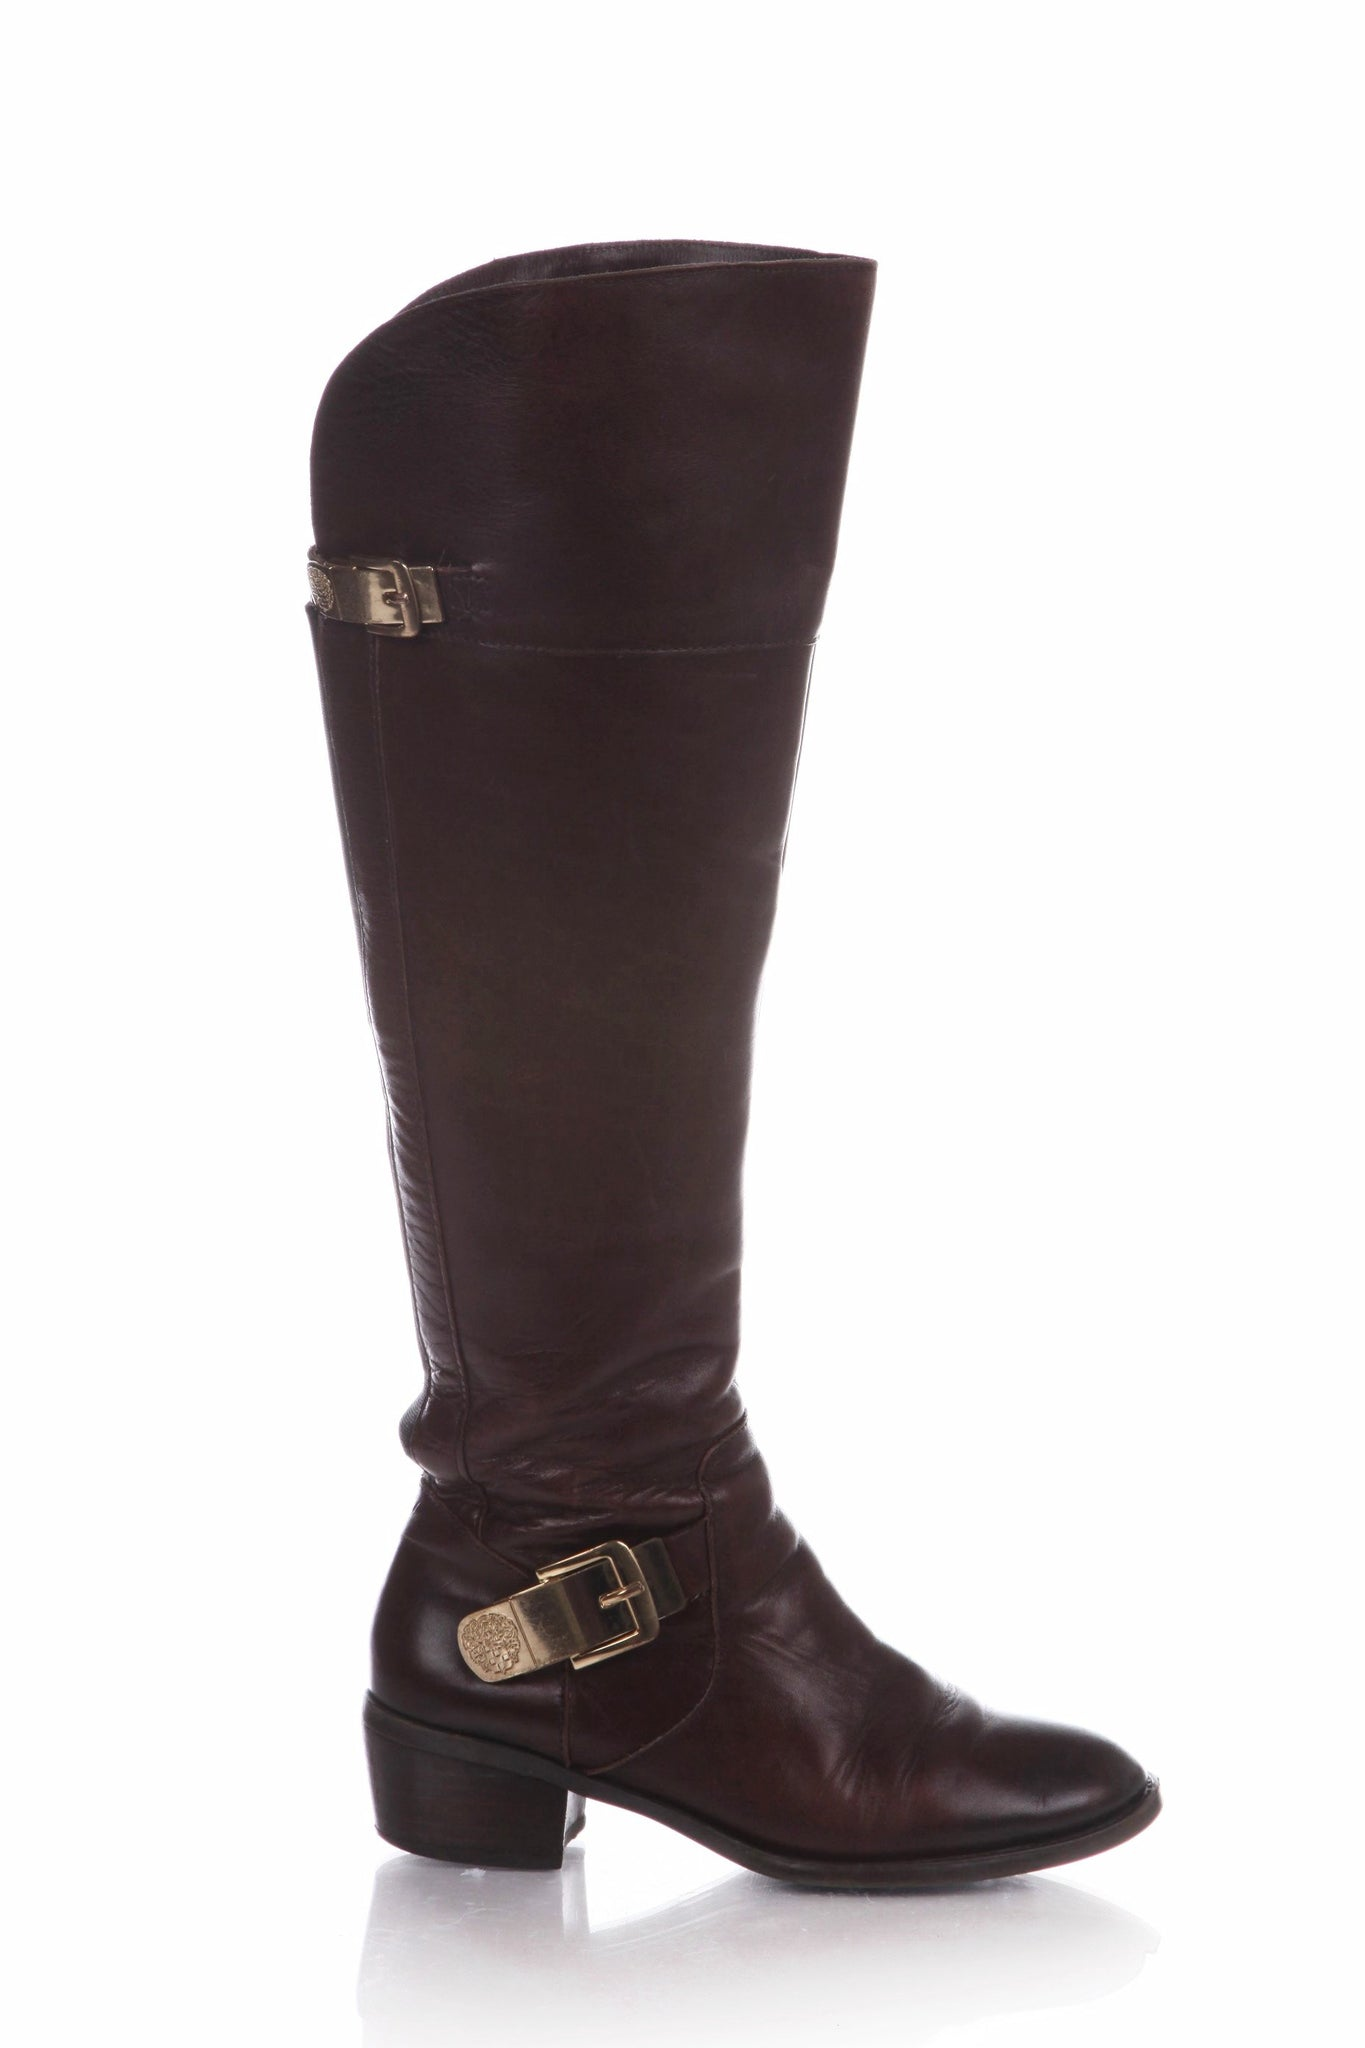 VINCE CAMUTO Knee High Riding Boots Size 7